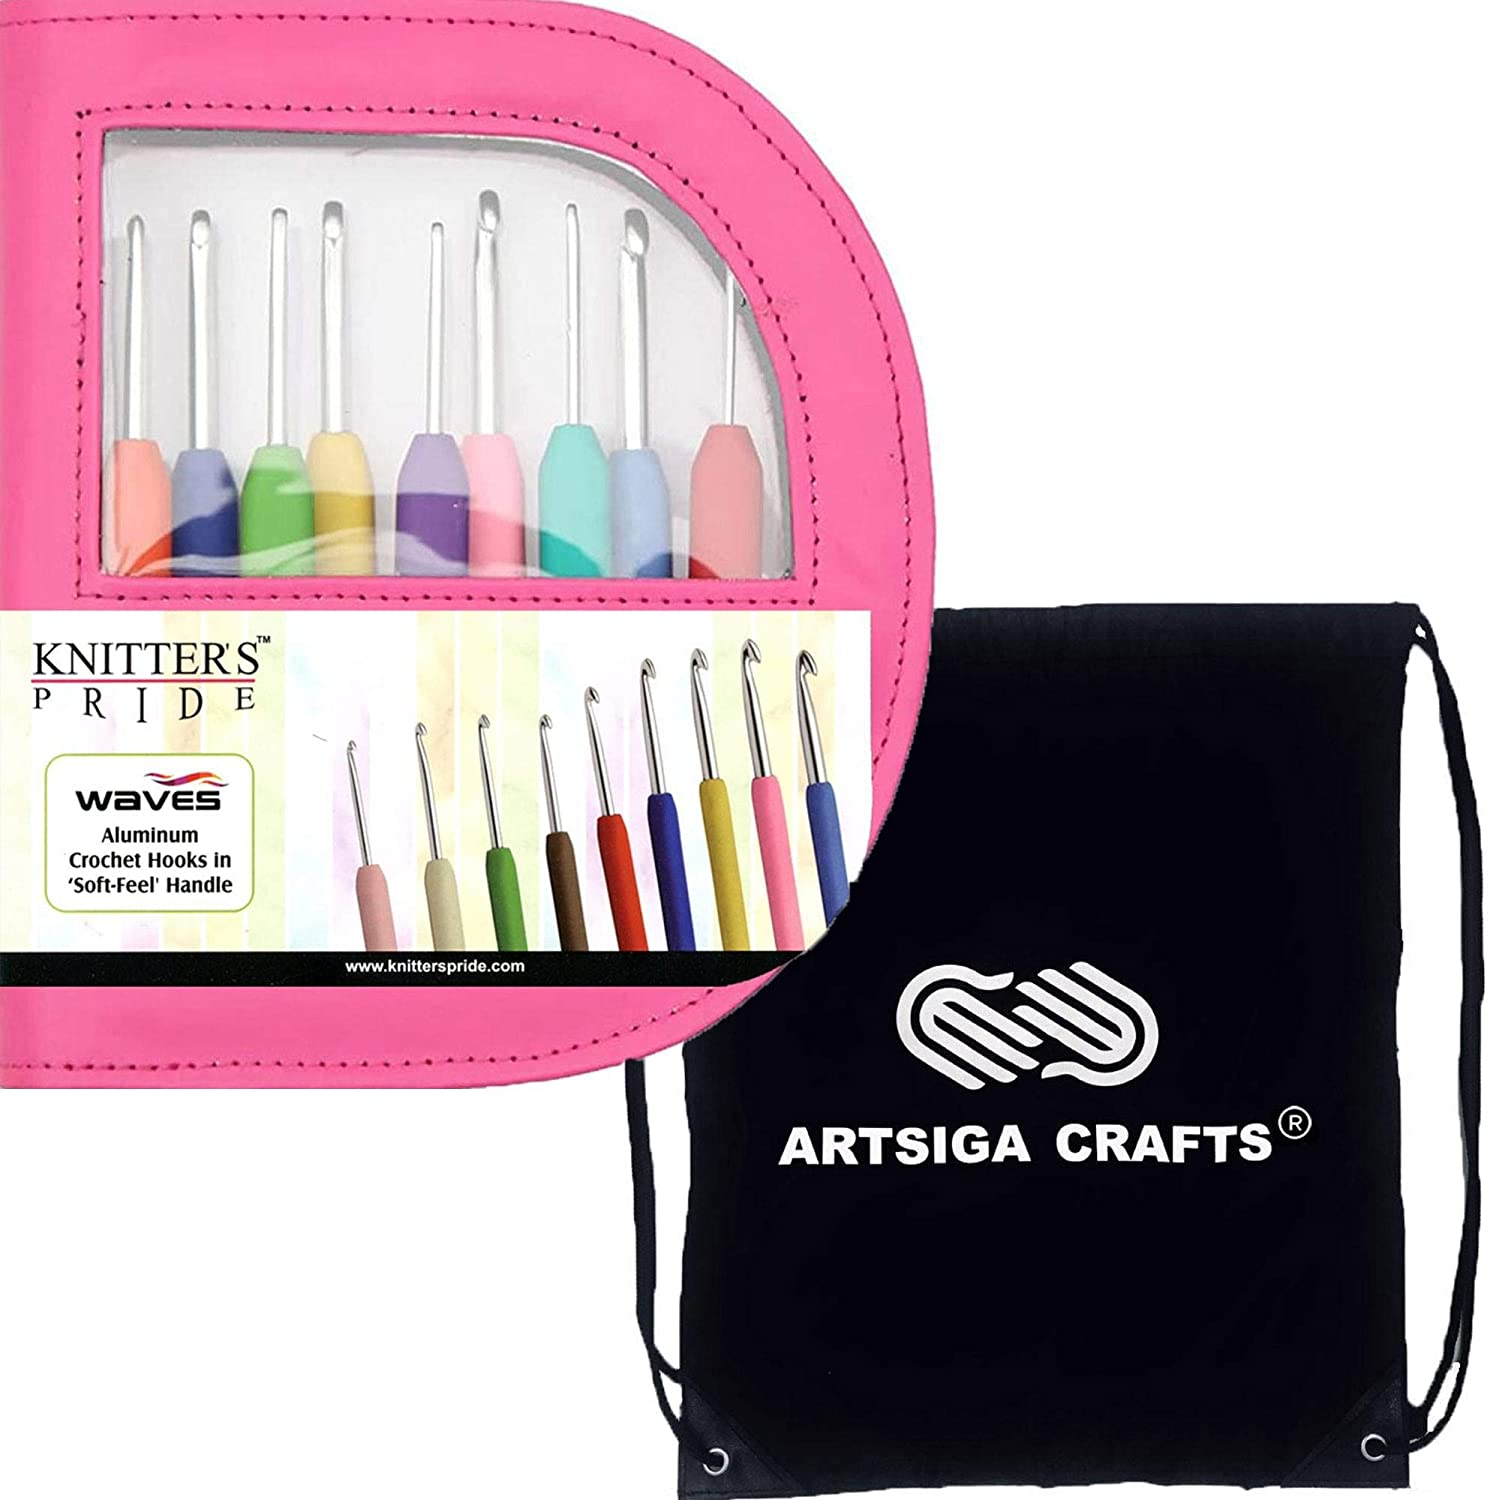 Knitter's Pride Knitting Needles Waves 7 inch (18cm) Crochet Hook Set in Fluorescent Pink Faux Leather Case Bundle with 1 Artsiga Crafts Project Bag 600332